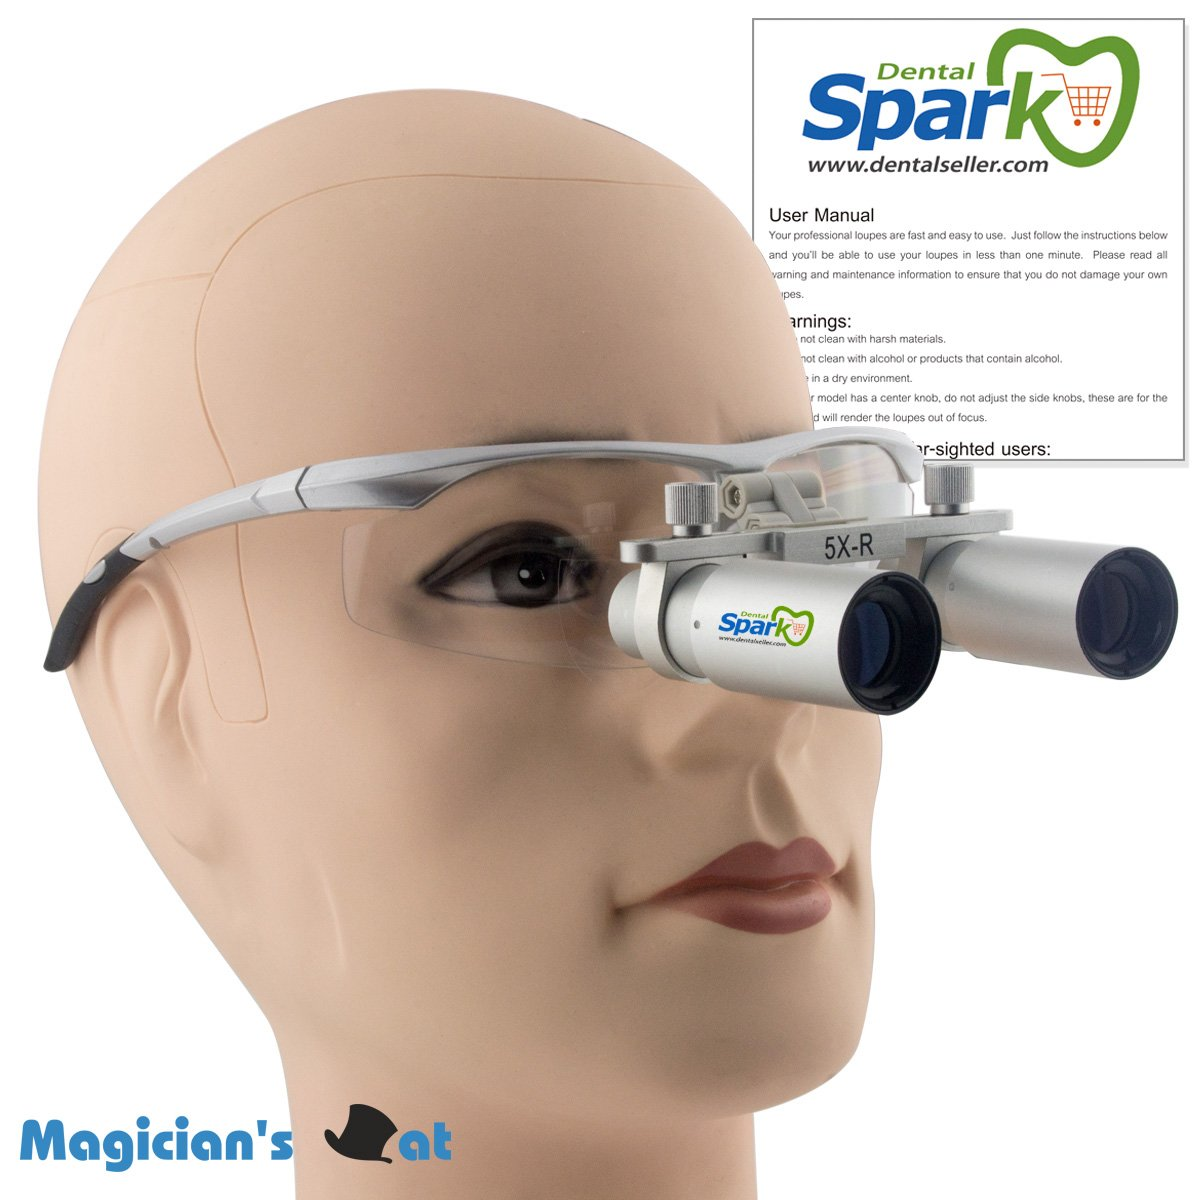 5.0X 420mm Working Distance Dental Surgical Medical Binocular Loupes with Ultra-light and High Brightness Optical Glasses